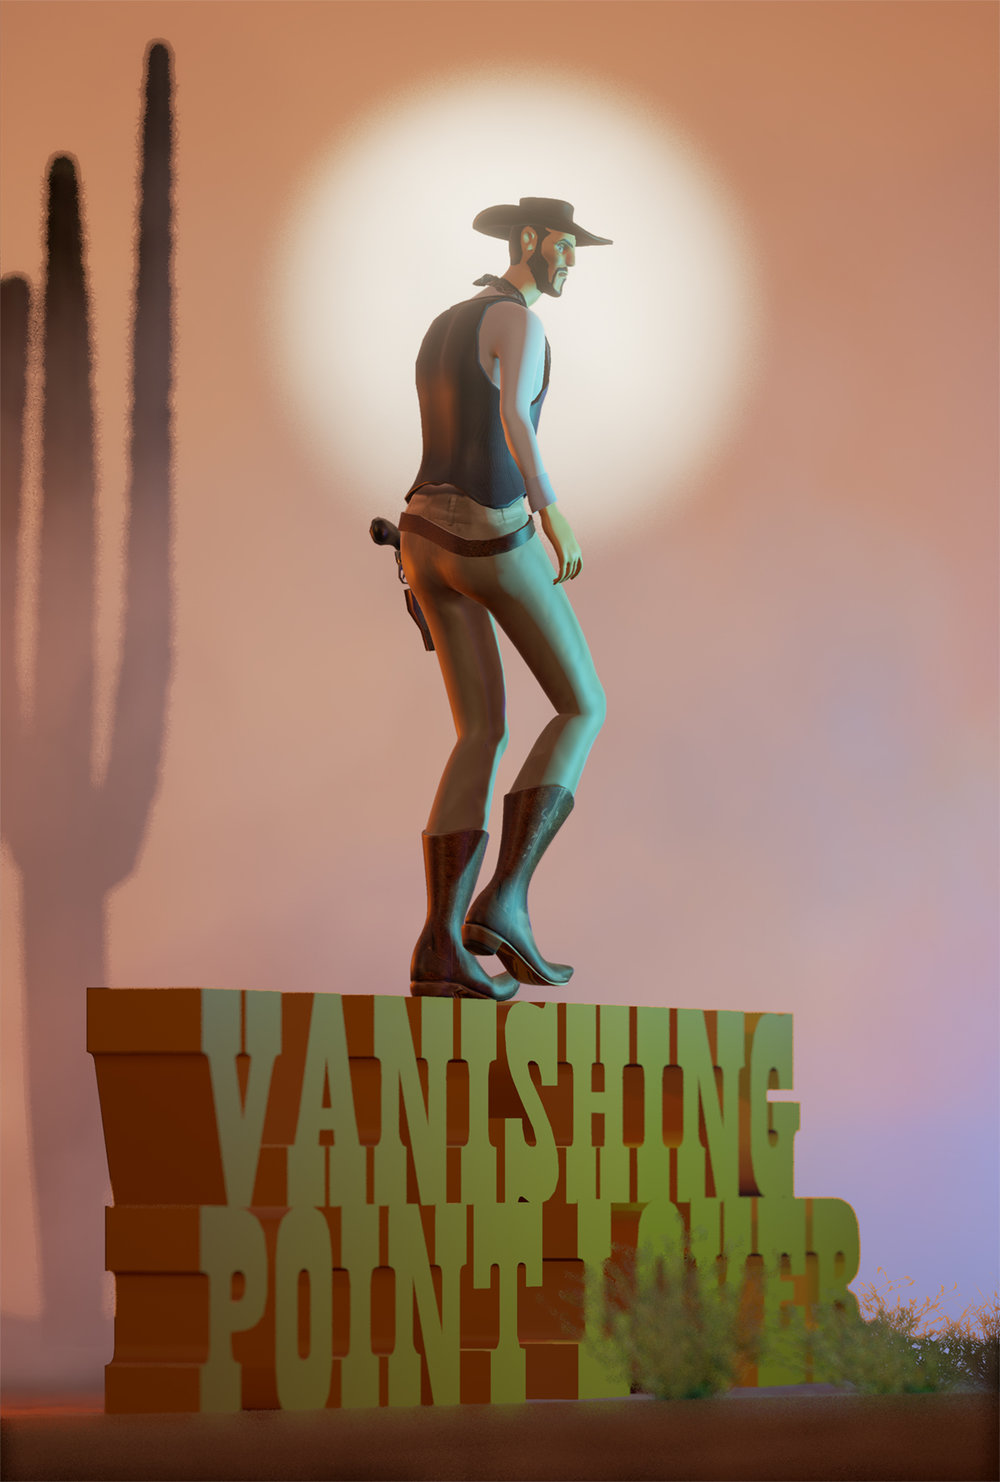 vanishingposter.jpg